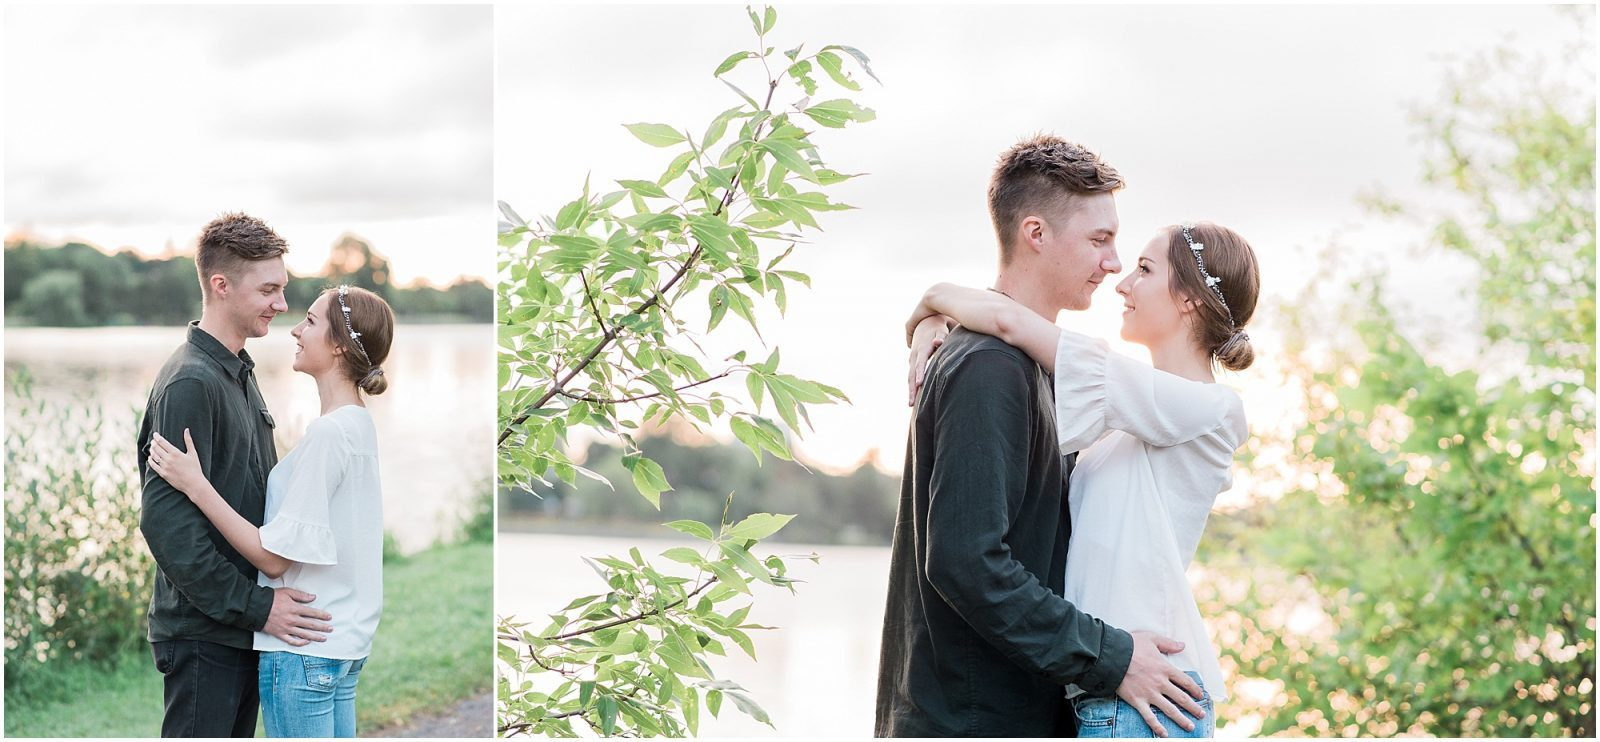 ottawa engagement - sunrise at dows lake arboretum - casual engagement